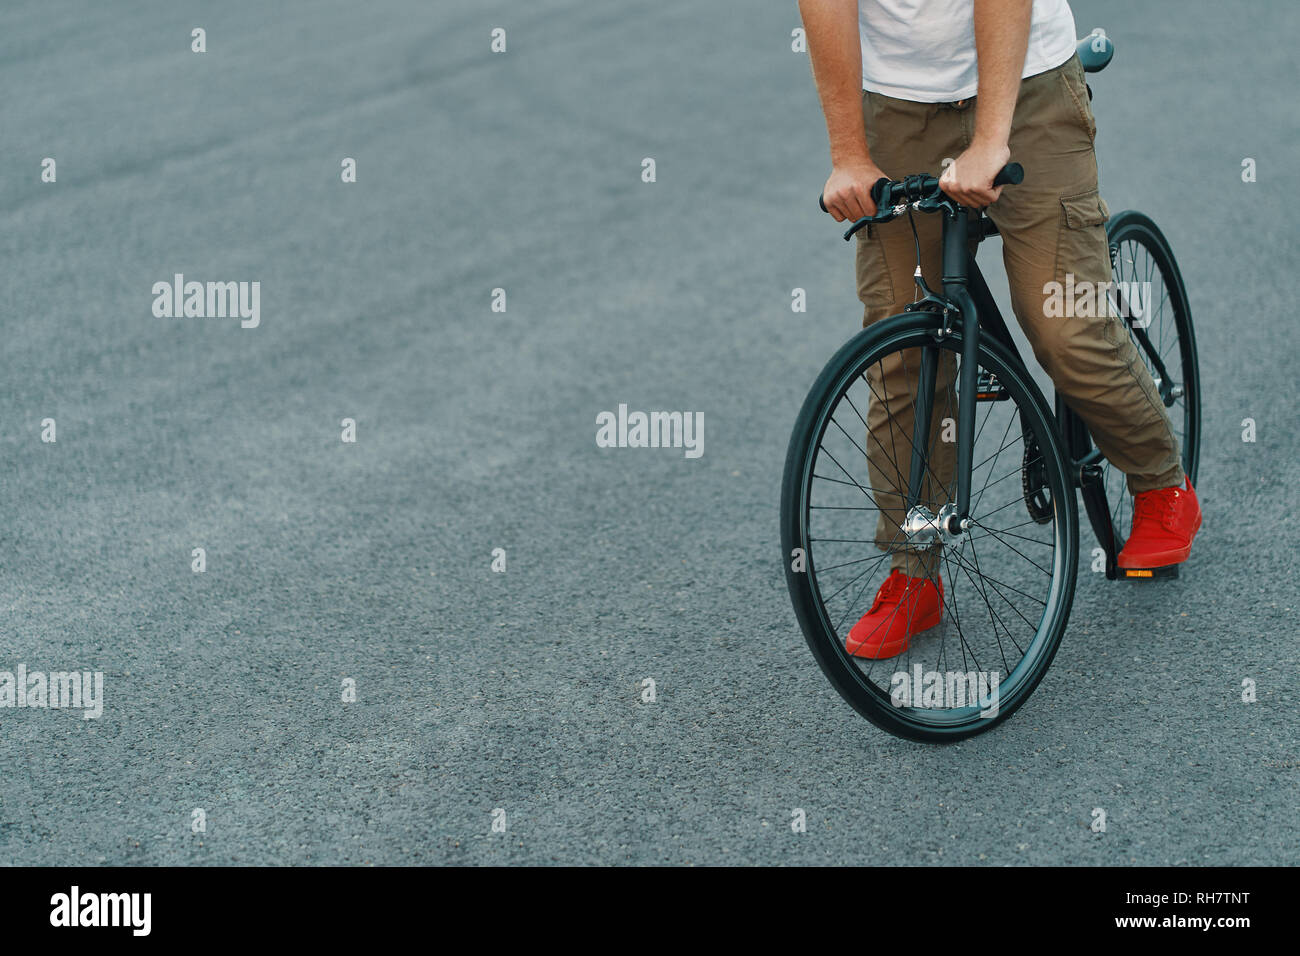 Closeup of casual man legs riding classic bike on city gray road wearing red sneakers and comfy pants. Copy space - Stock Image